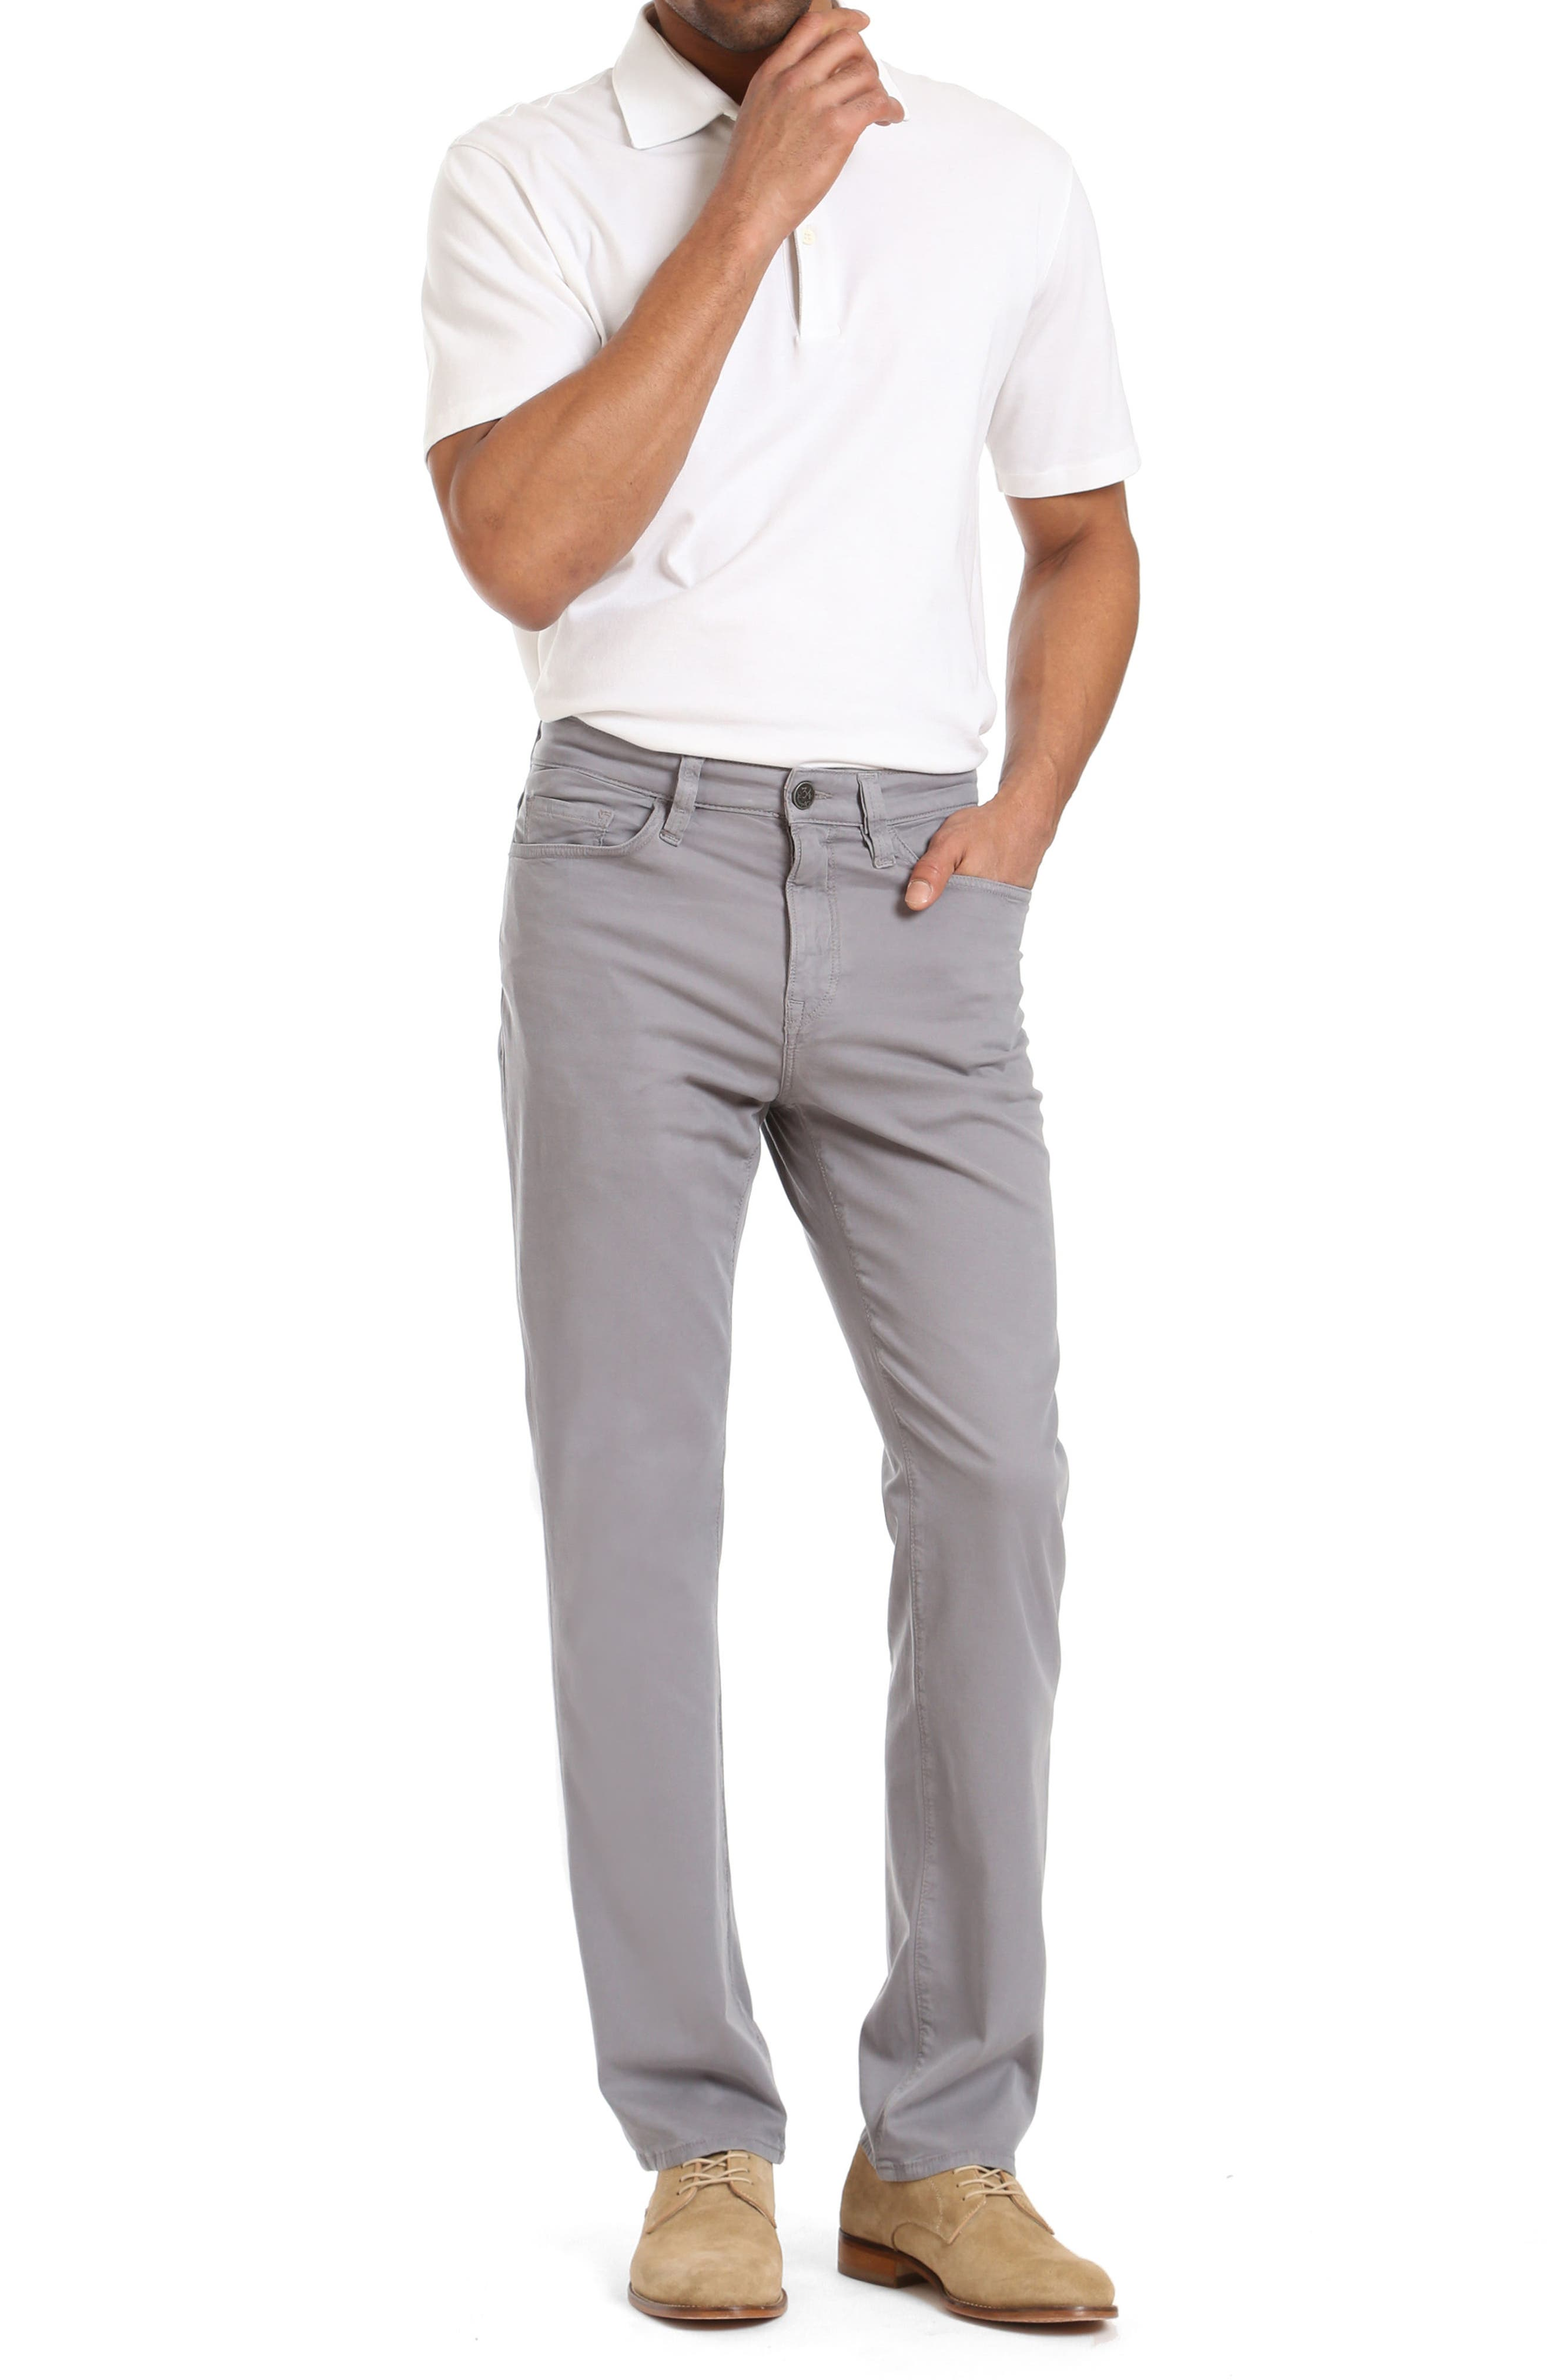 Charisma Relaxed Fit Twill Pants,                             Alternate thumbnail 4, color,                             Grey Fine Twill